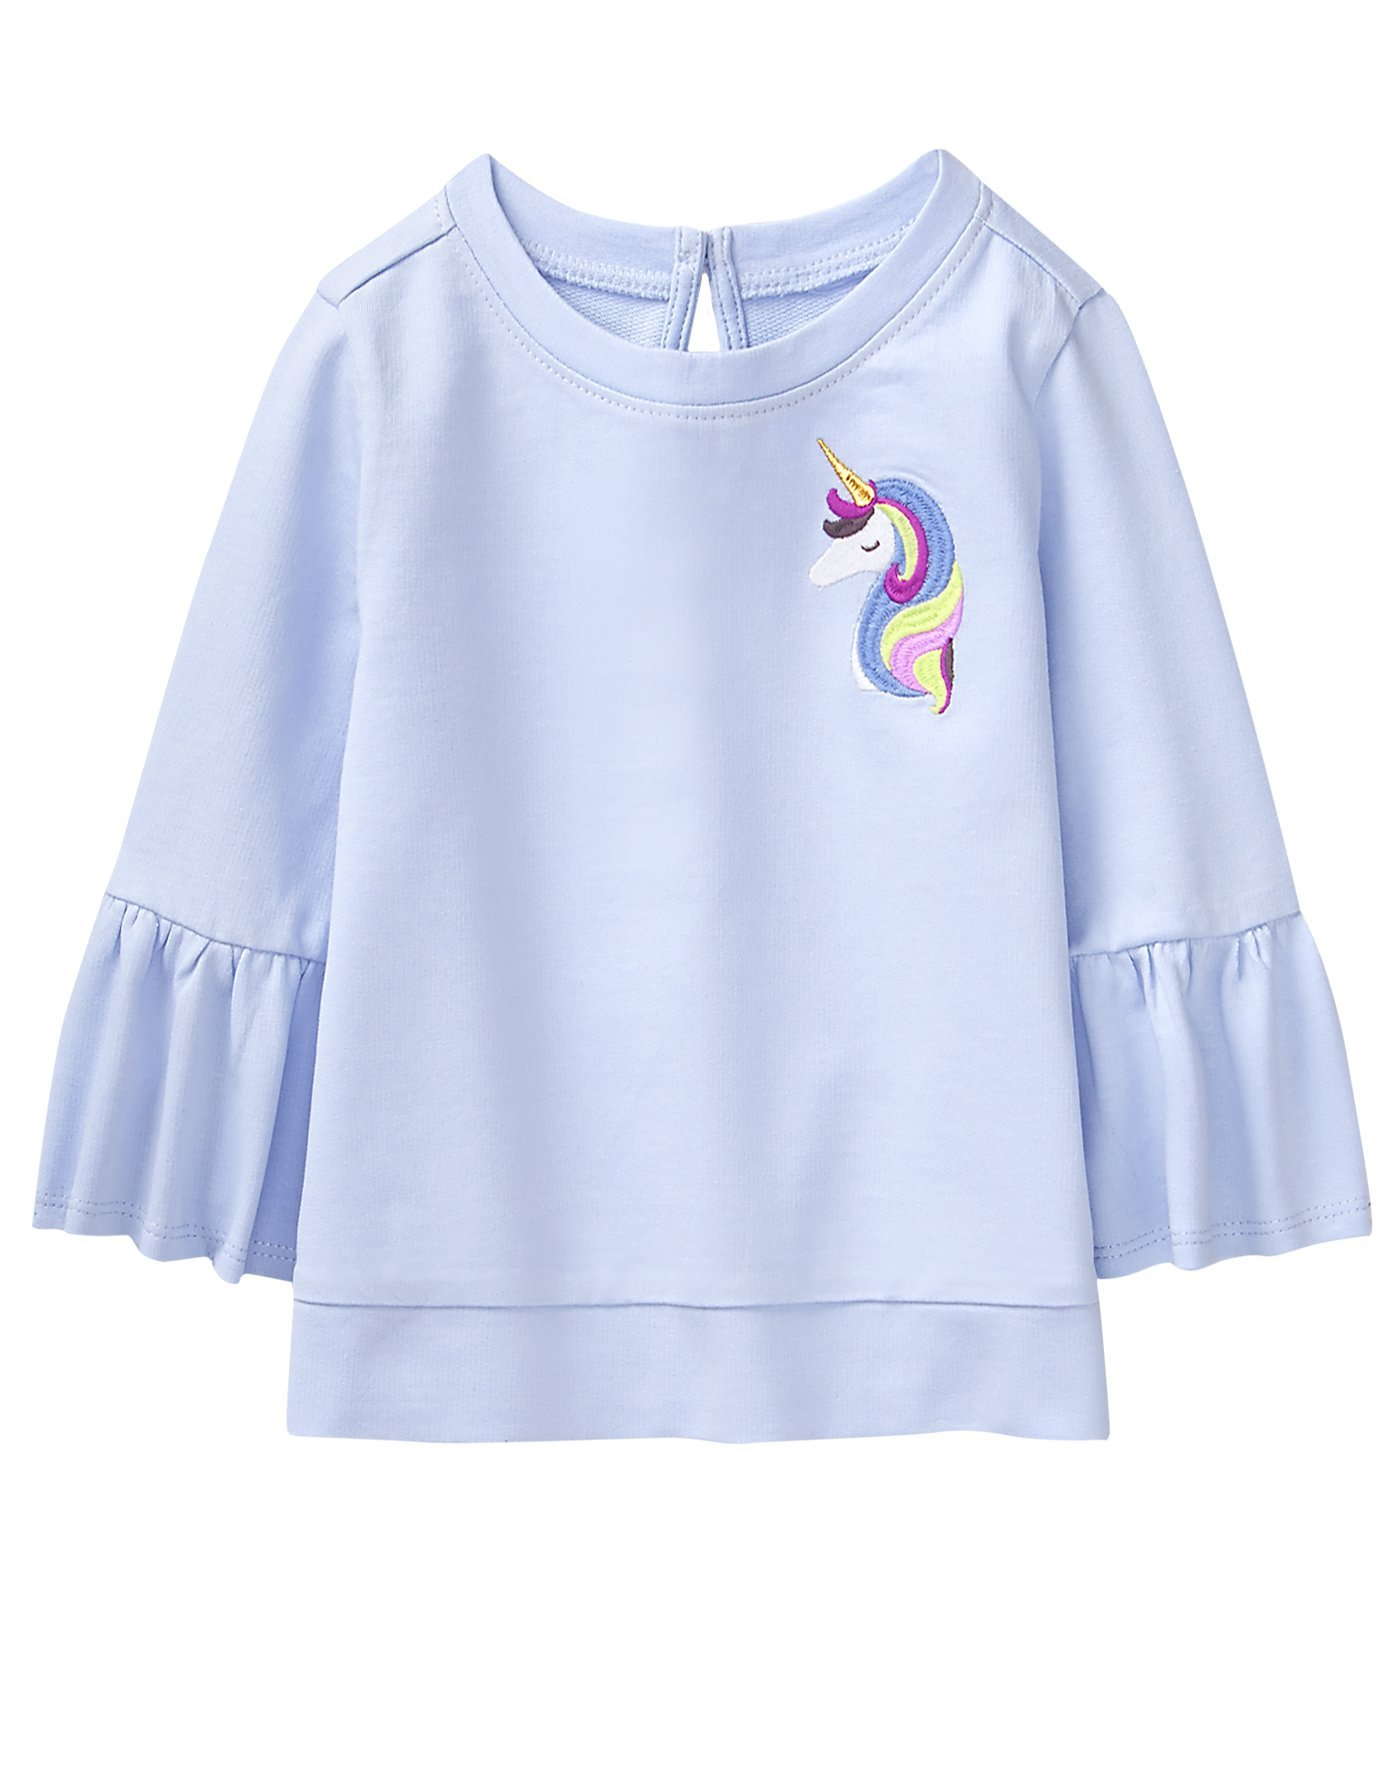 Crazy 8 Toddler Girls' 3/4 Bell Sleeve Pullover Top, Unicorn Purple, 18-24 Mo